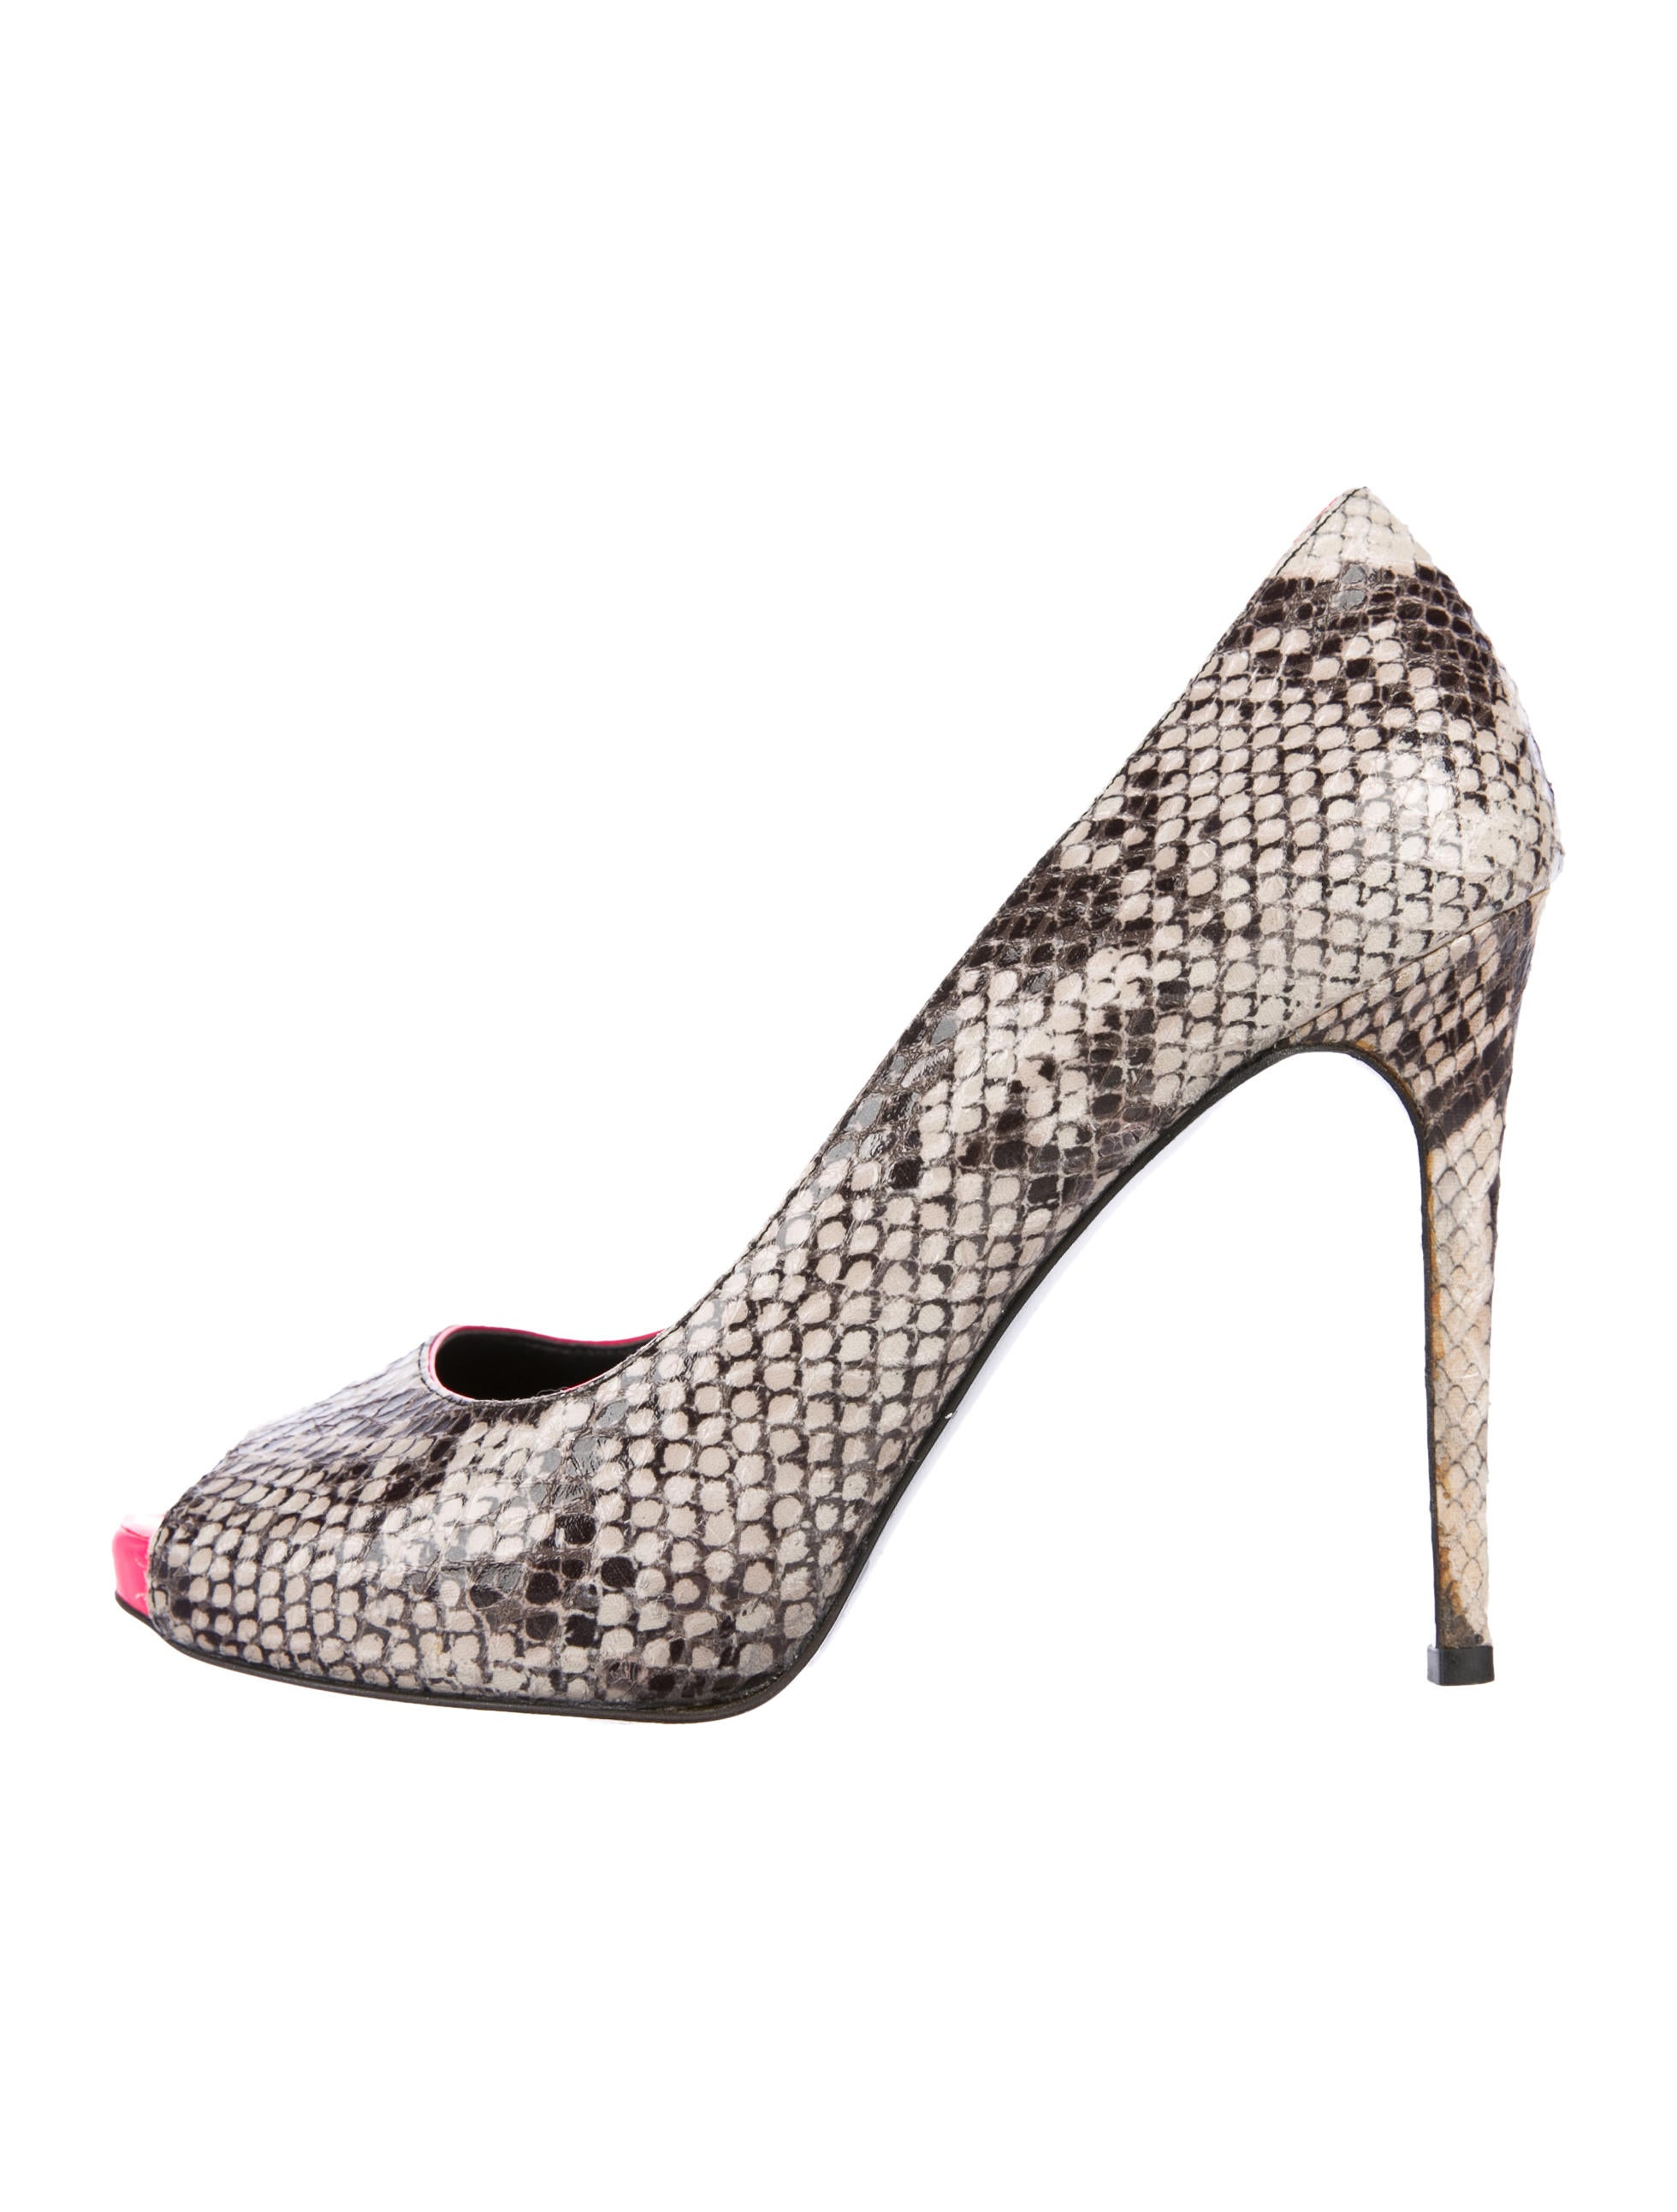 outlet with mastercard discount 100% guaranteed Stella McCartney Embossed Pointed-Toe Pumps pBfTE1